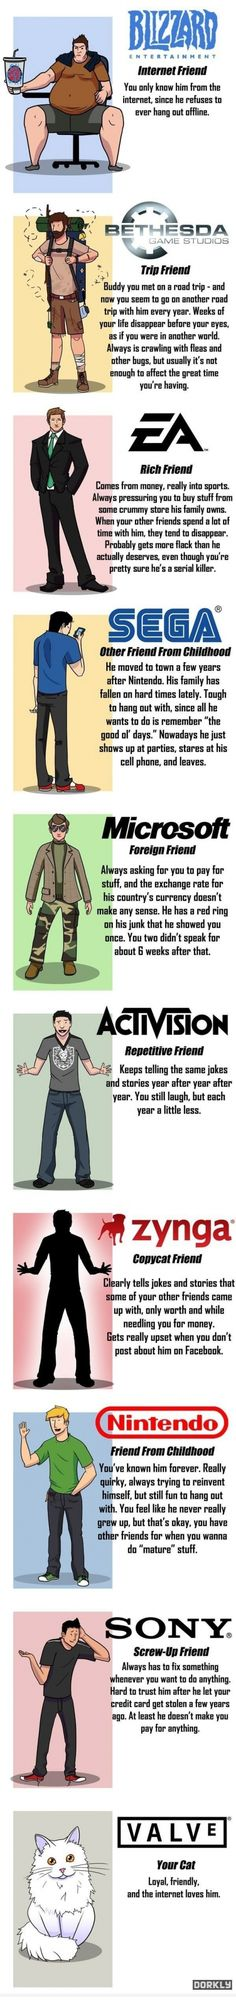 Game companies as friends...a few a definitely agree with